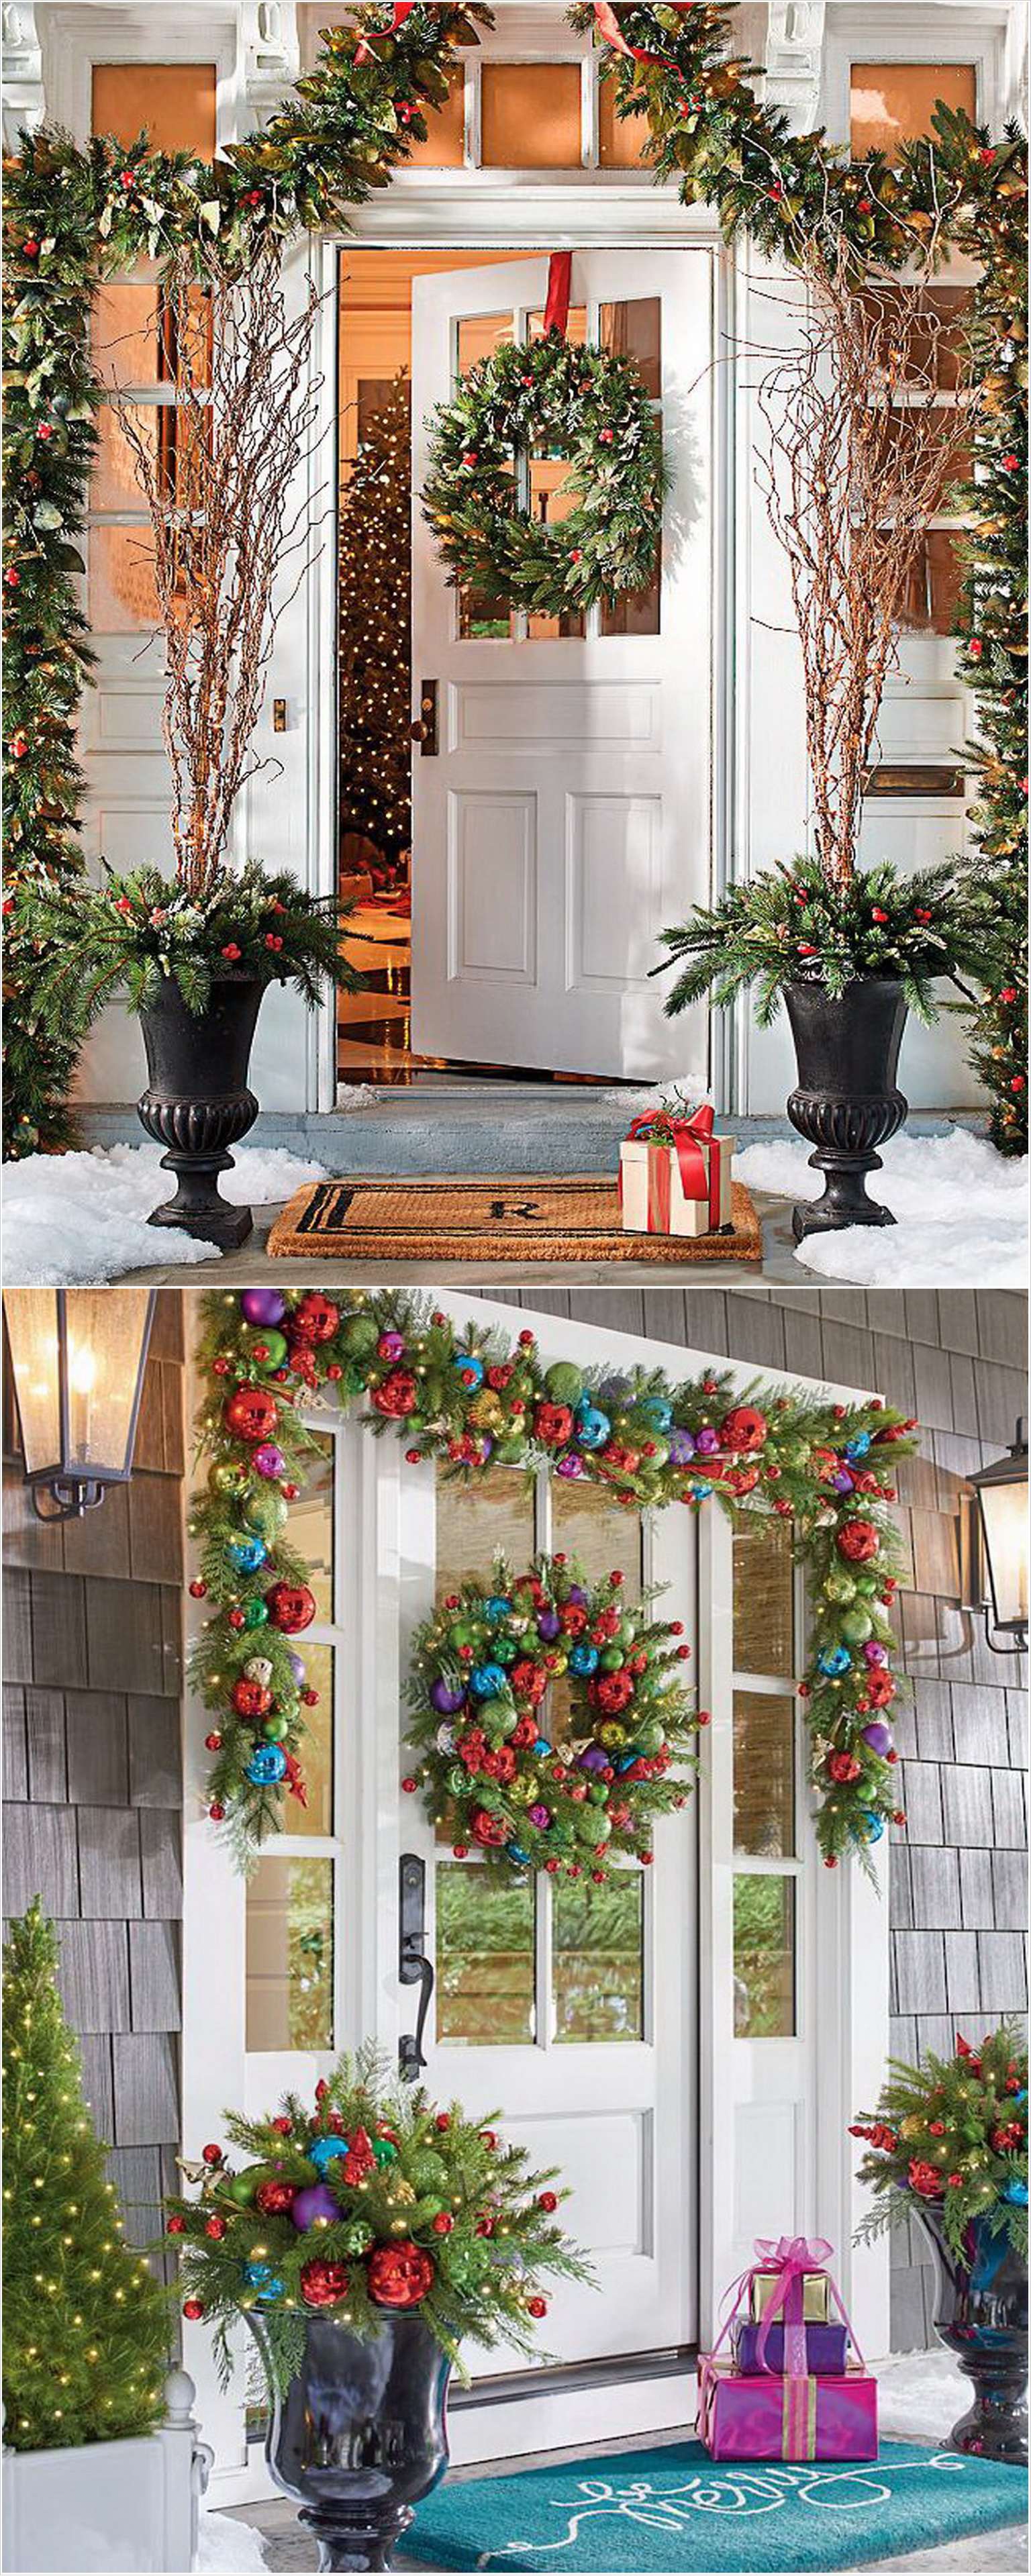 stylish indooroutdoor christmas decorations grandinroad